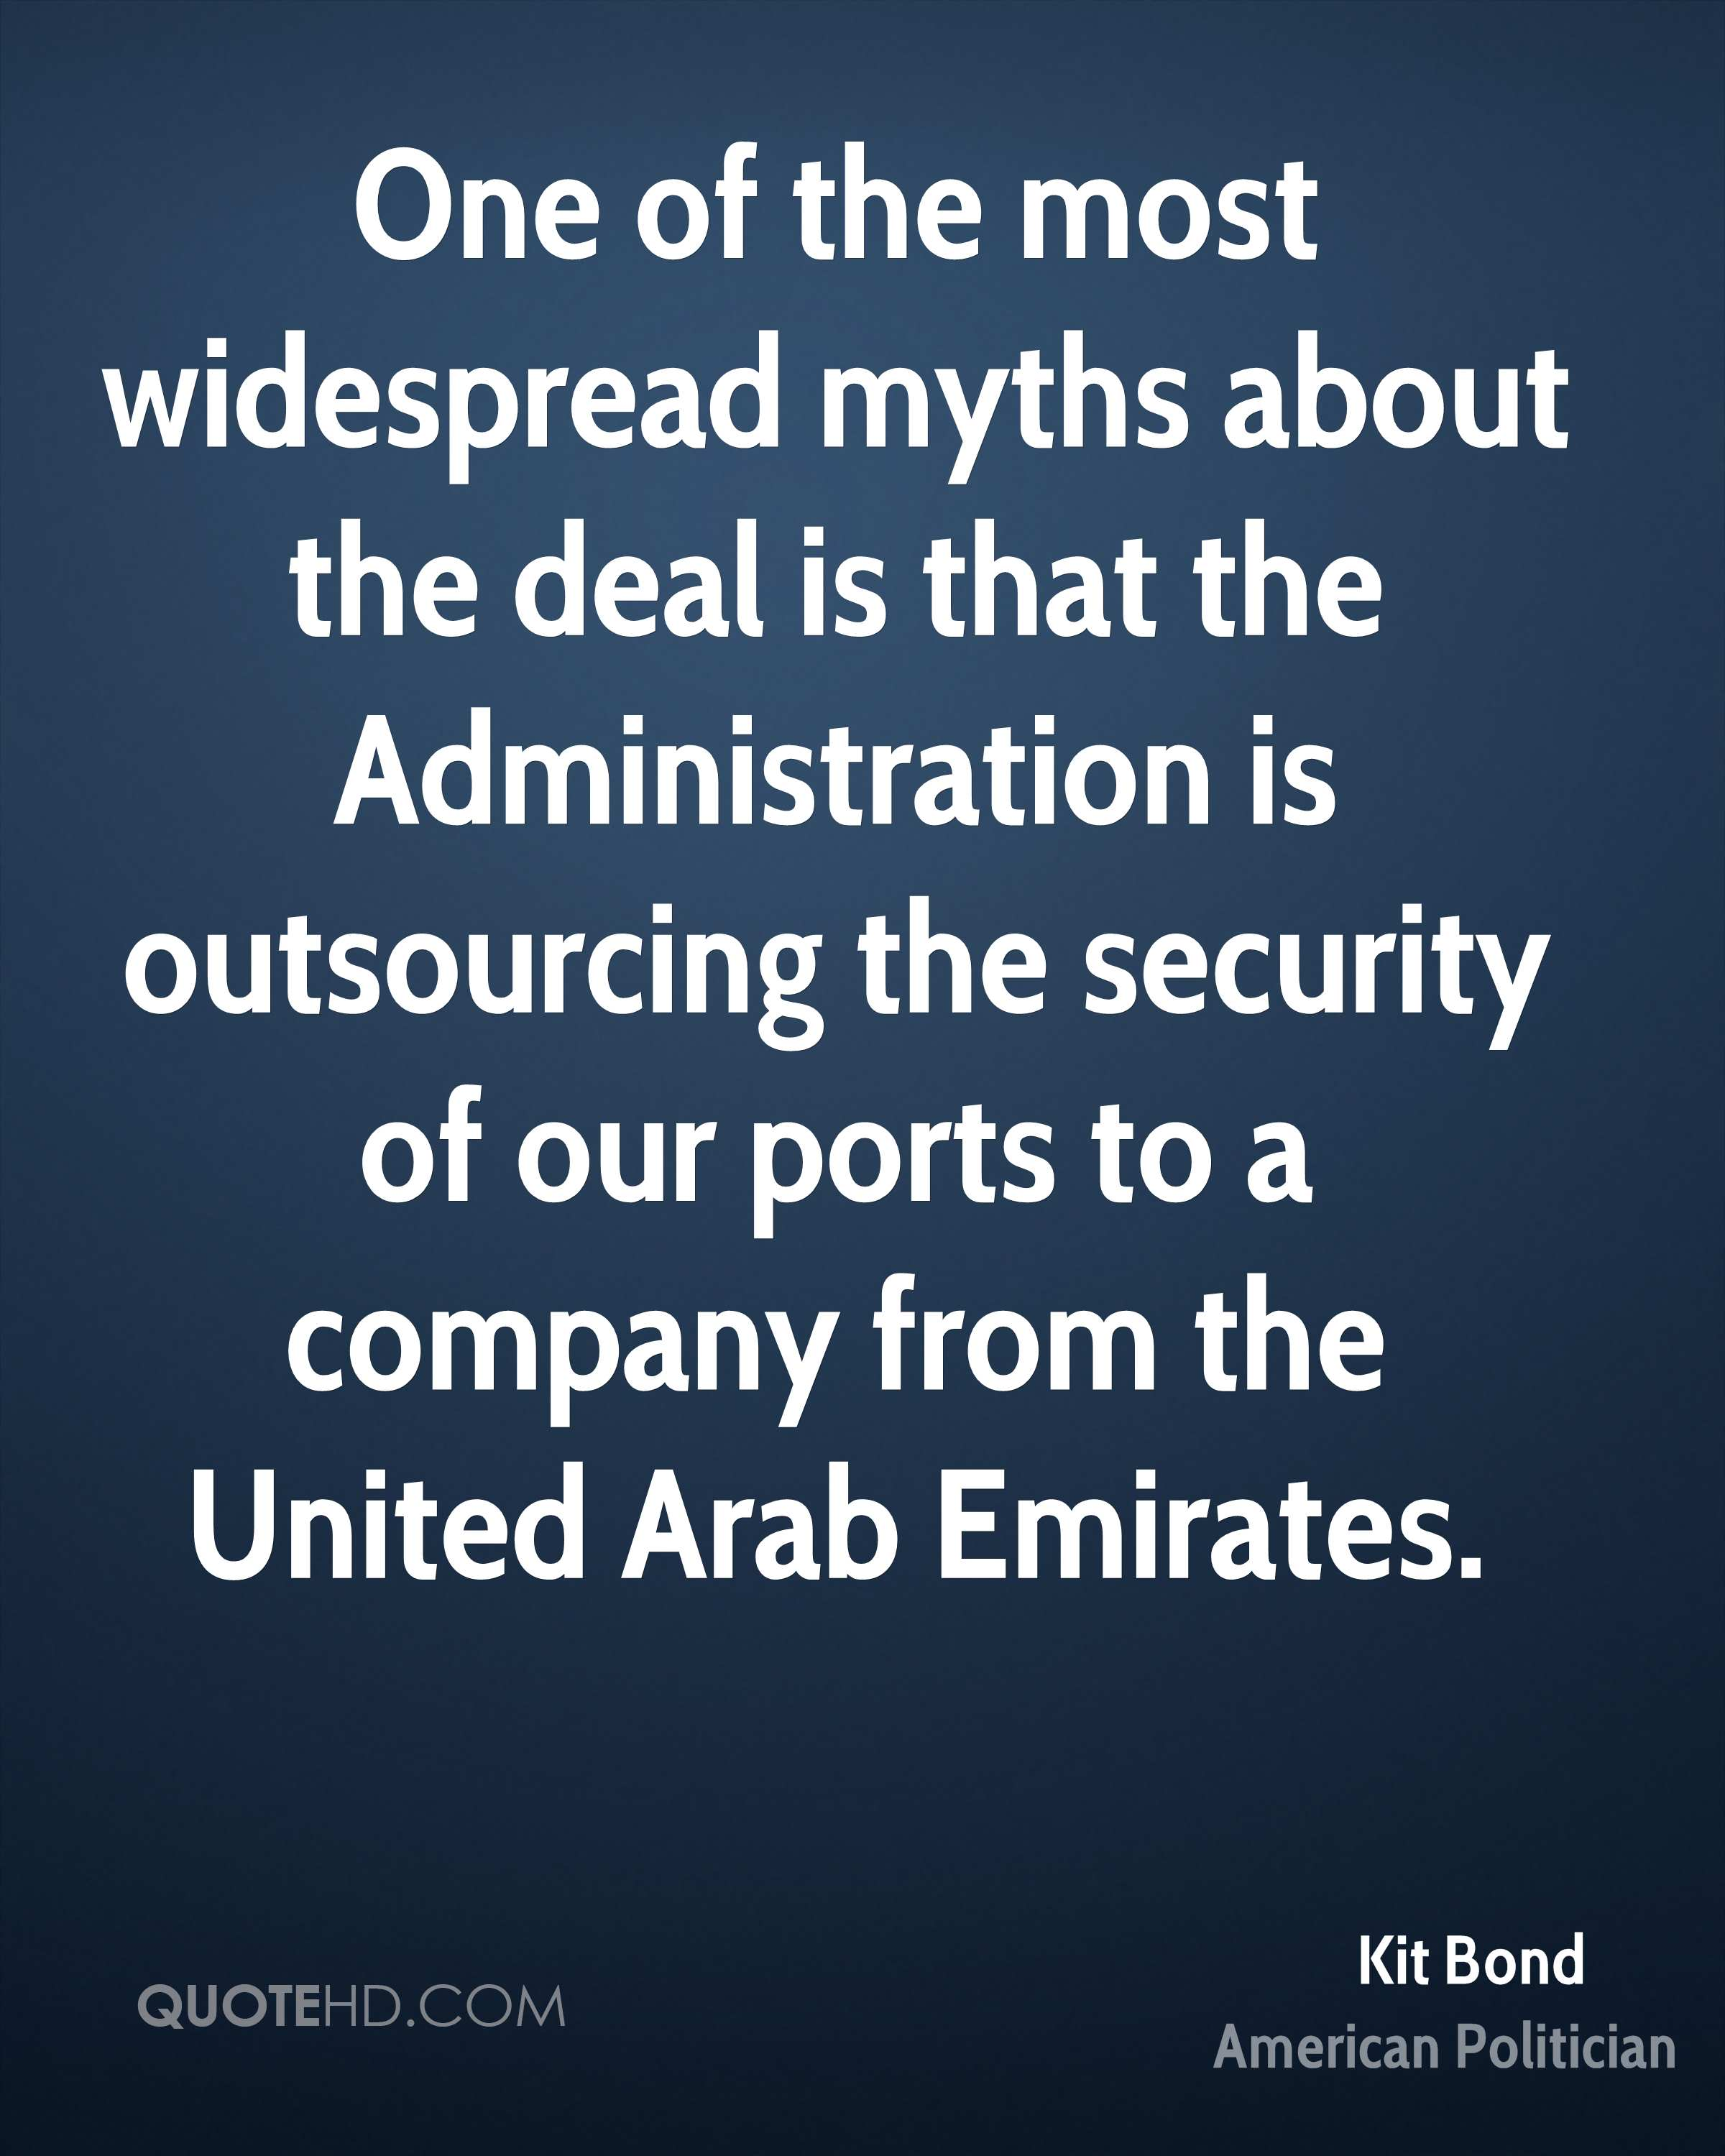 One of the most widespread myths about the deal is that the Administration is outsourcing the security of our ports to a company from the United Arab Emirates.